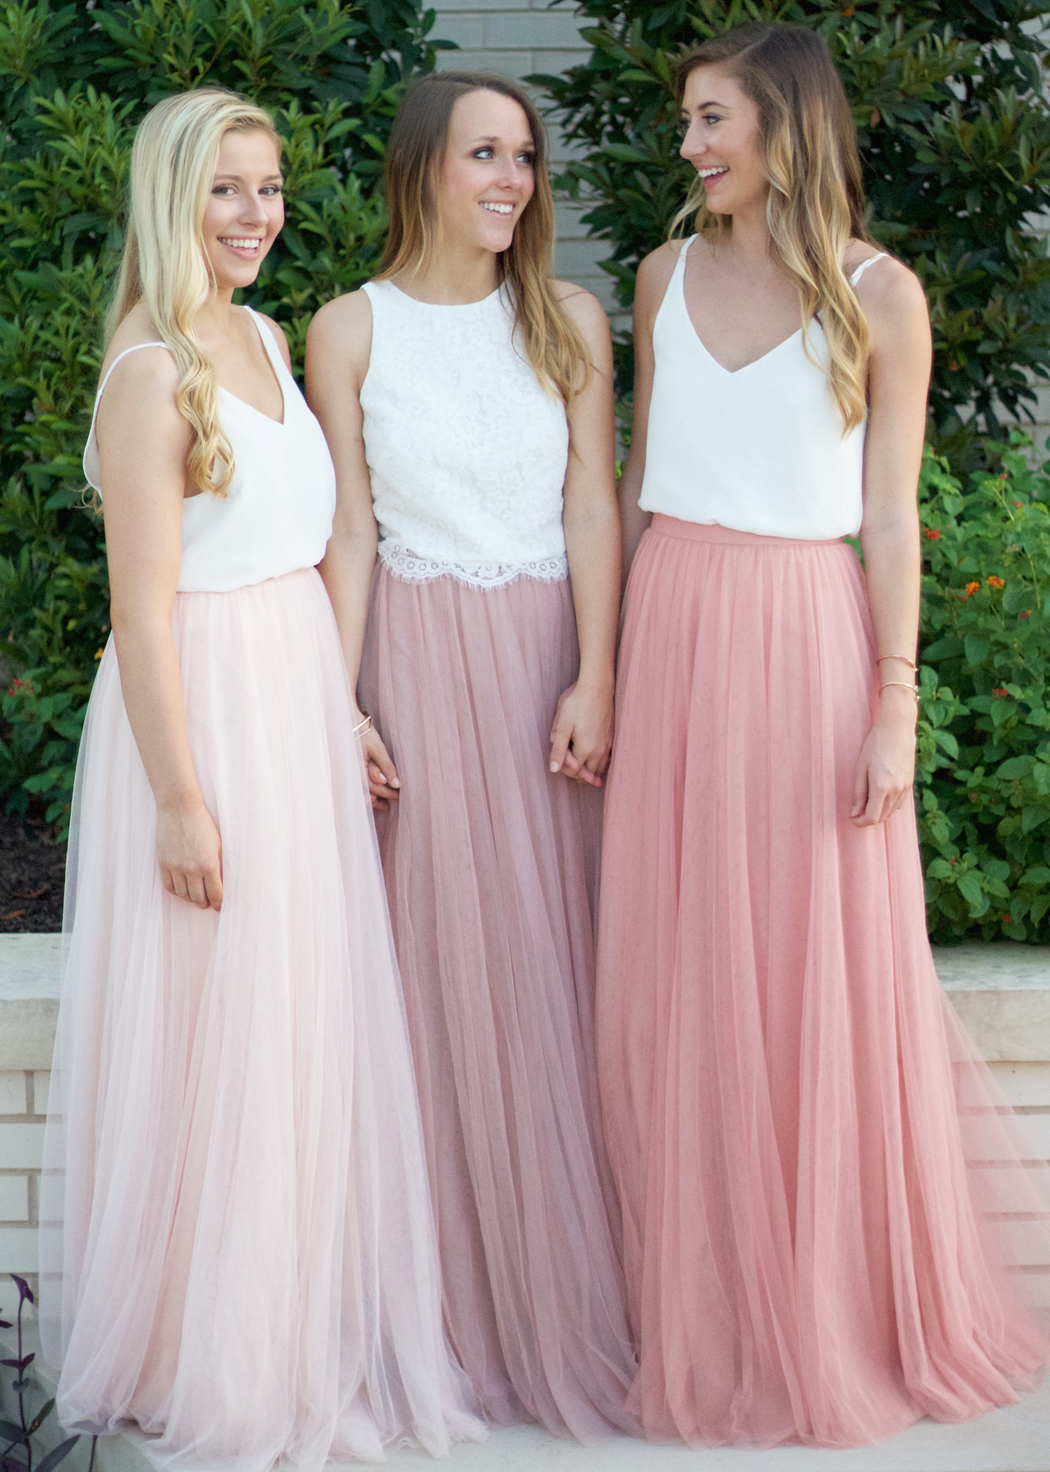 Designer Quality Tulle Bridesmaids Skirts By Revelry Are Only 125 They Come In Over 30 Colors And Sizes 0 32 S Dresses